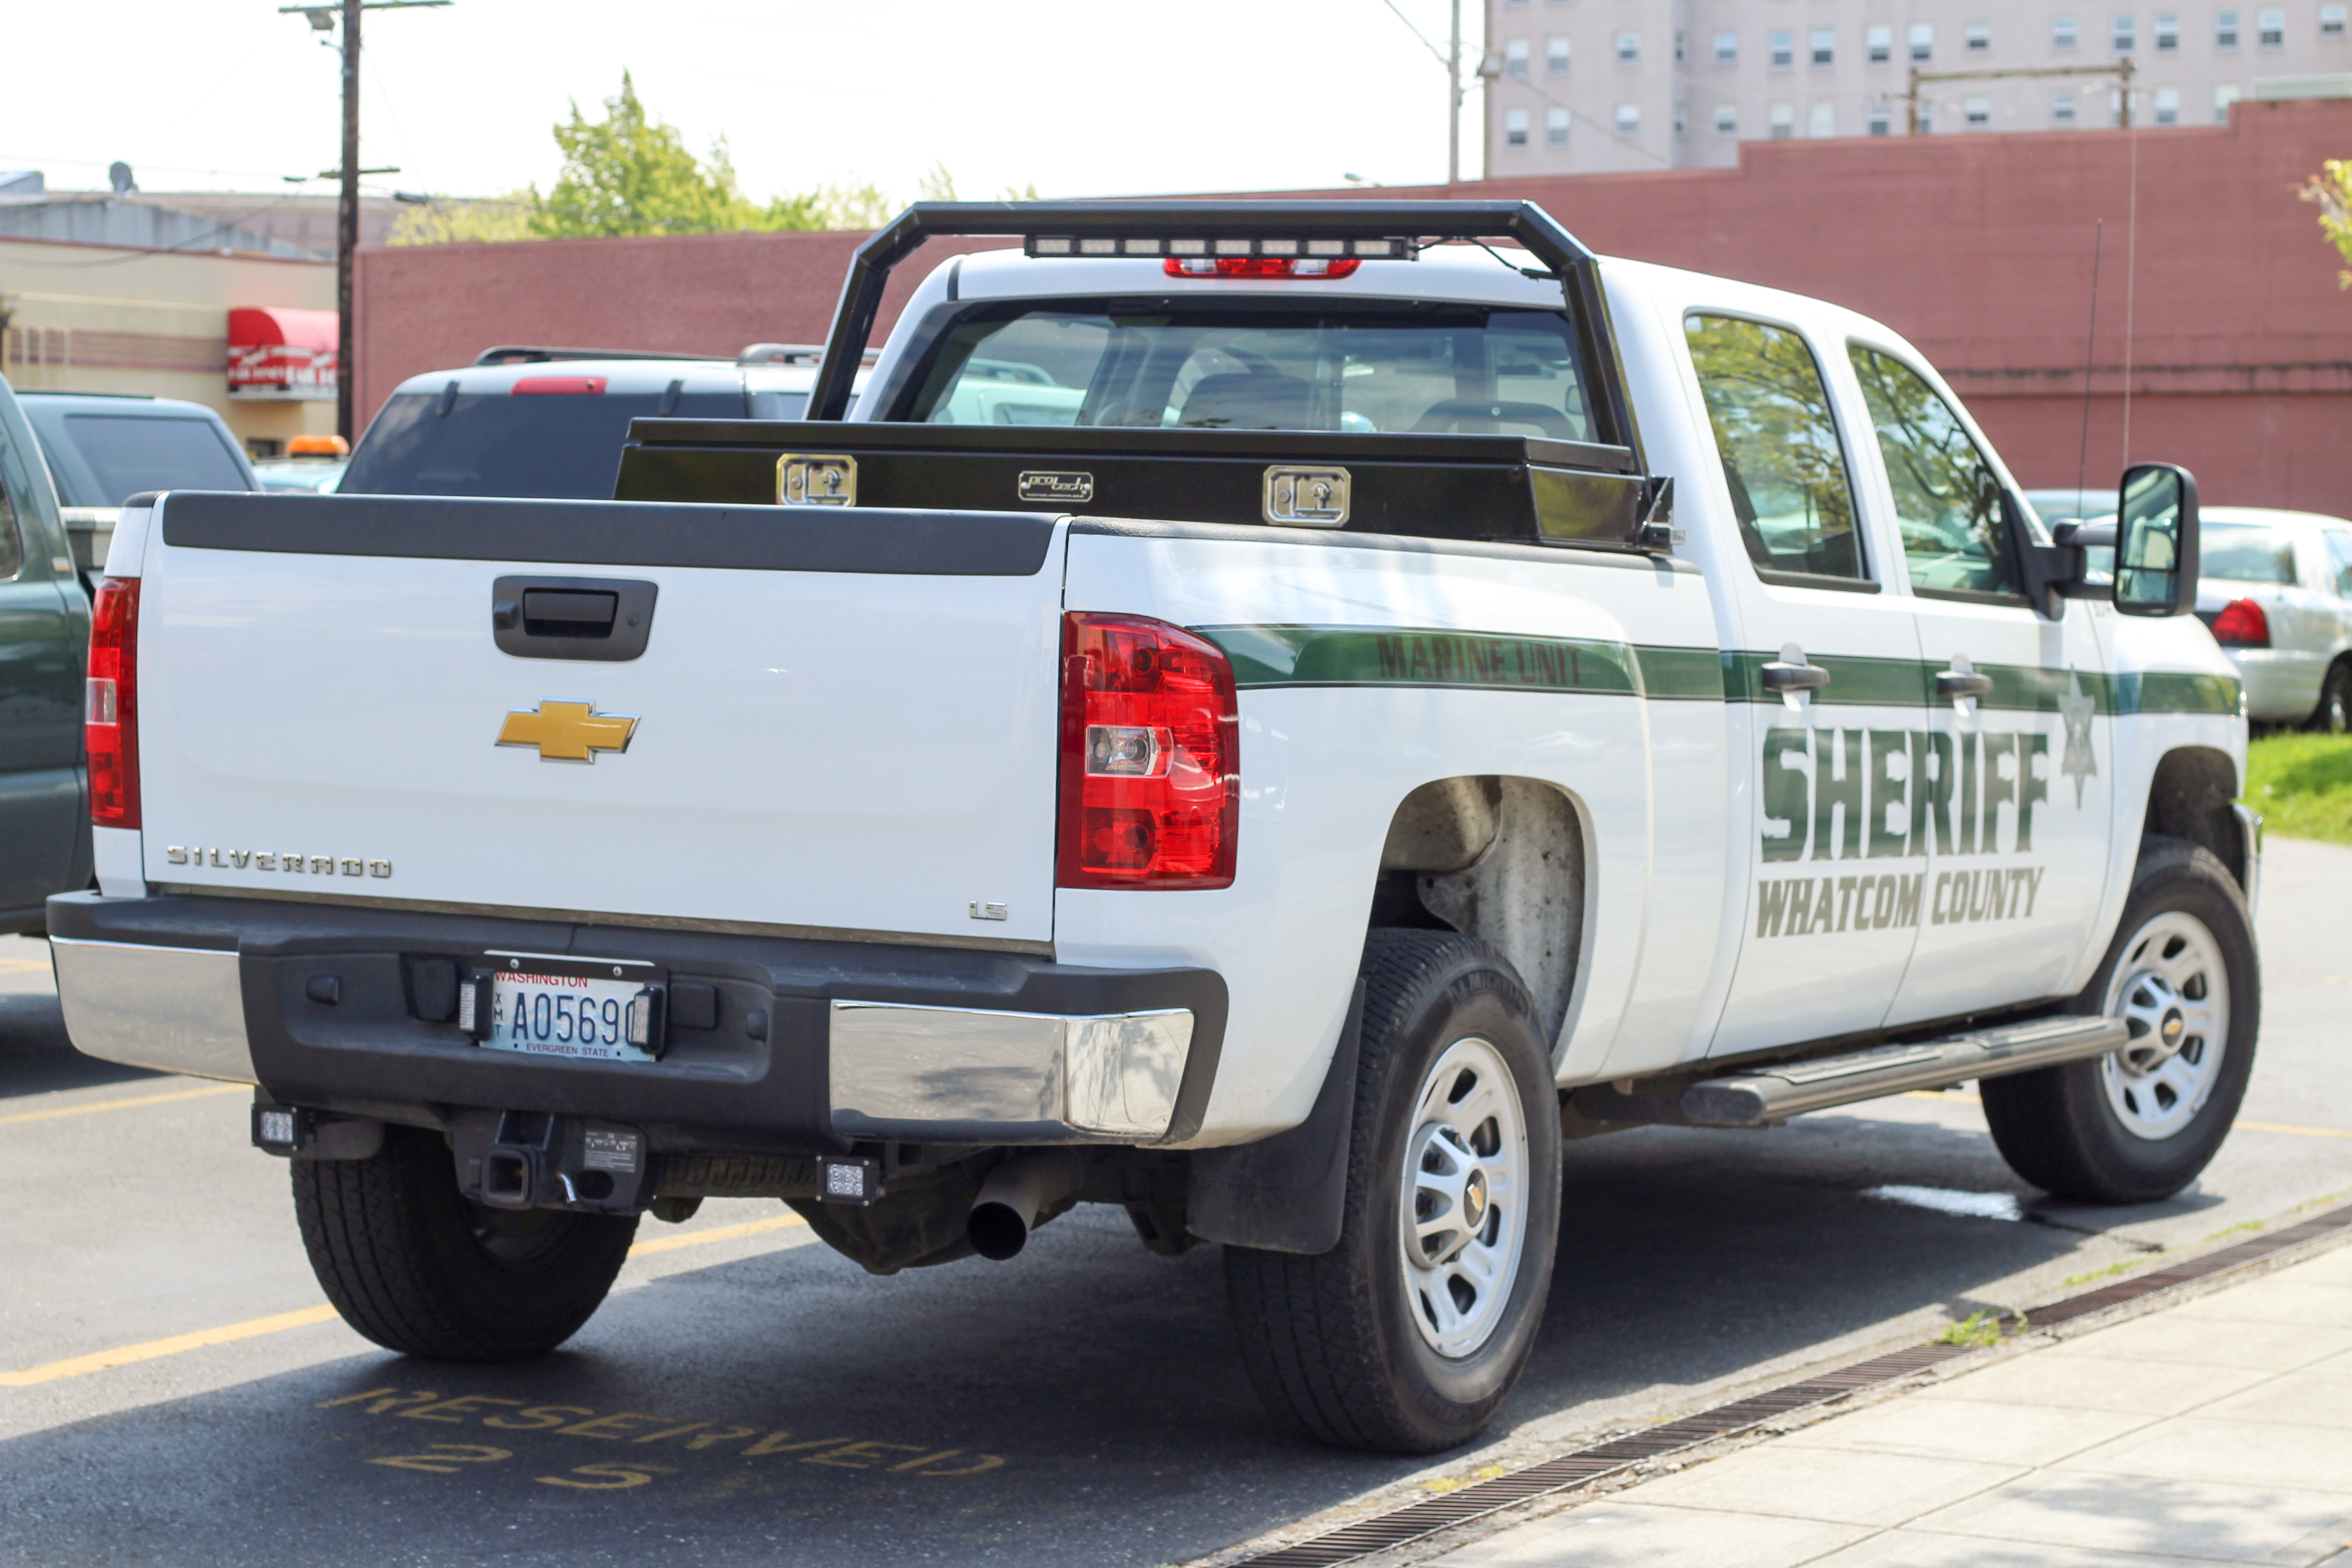 Whatcom sheriff: marine unit photo